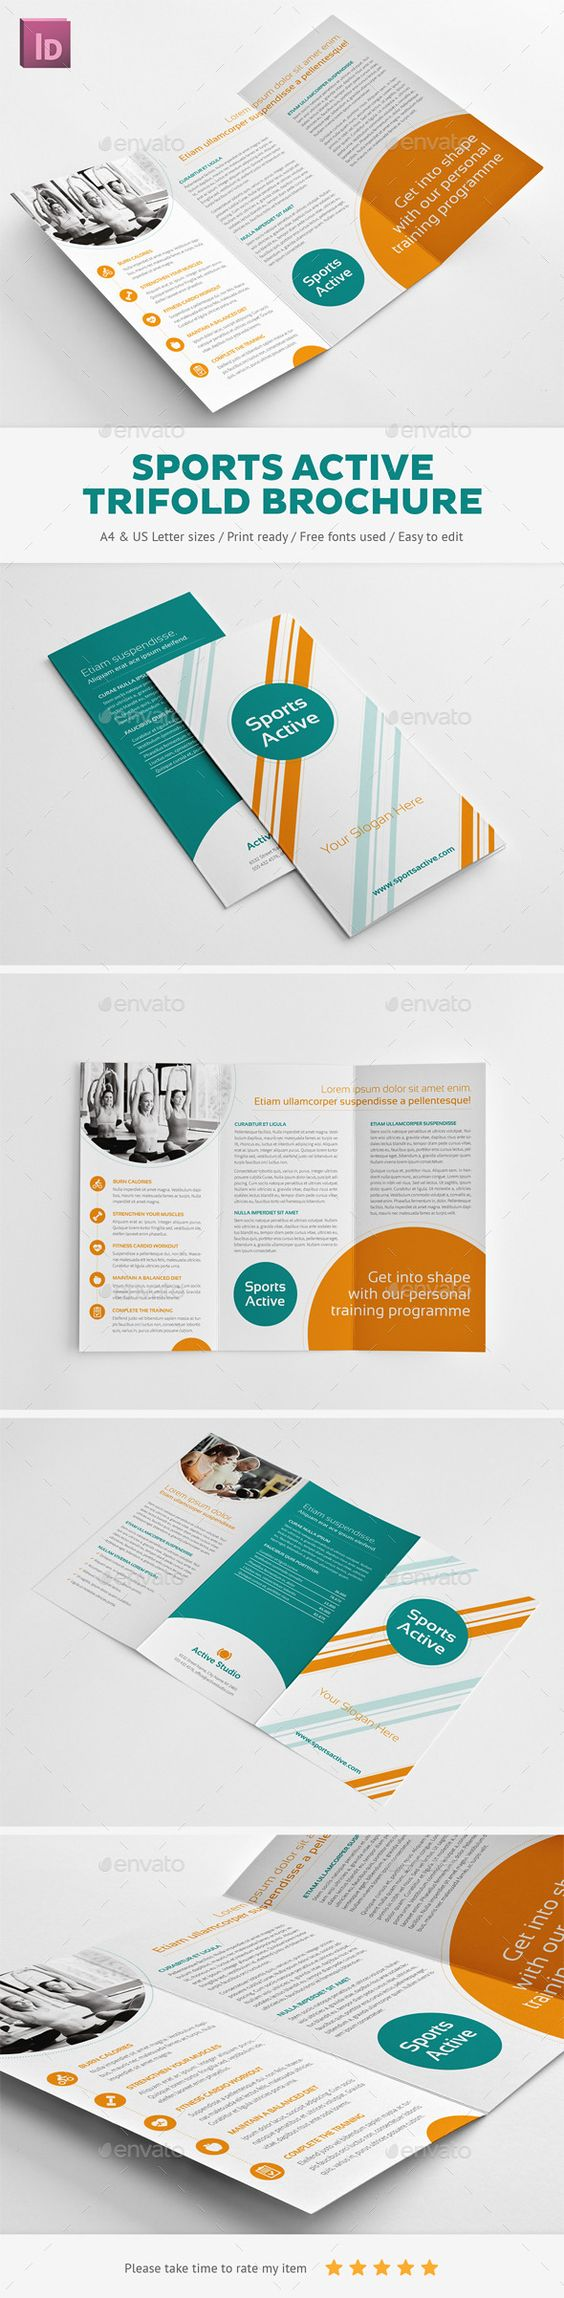 sports brochure templates - bullets design and brochure template on pinterest